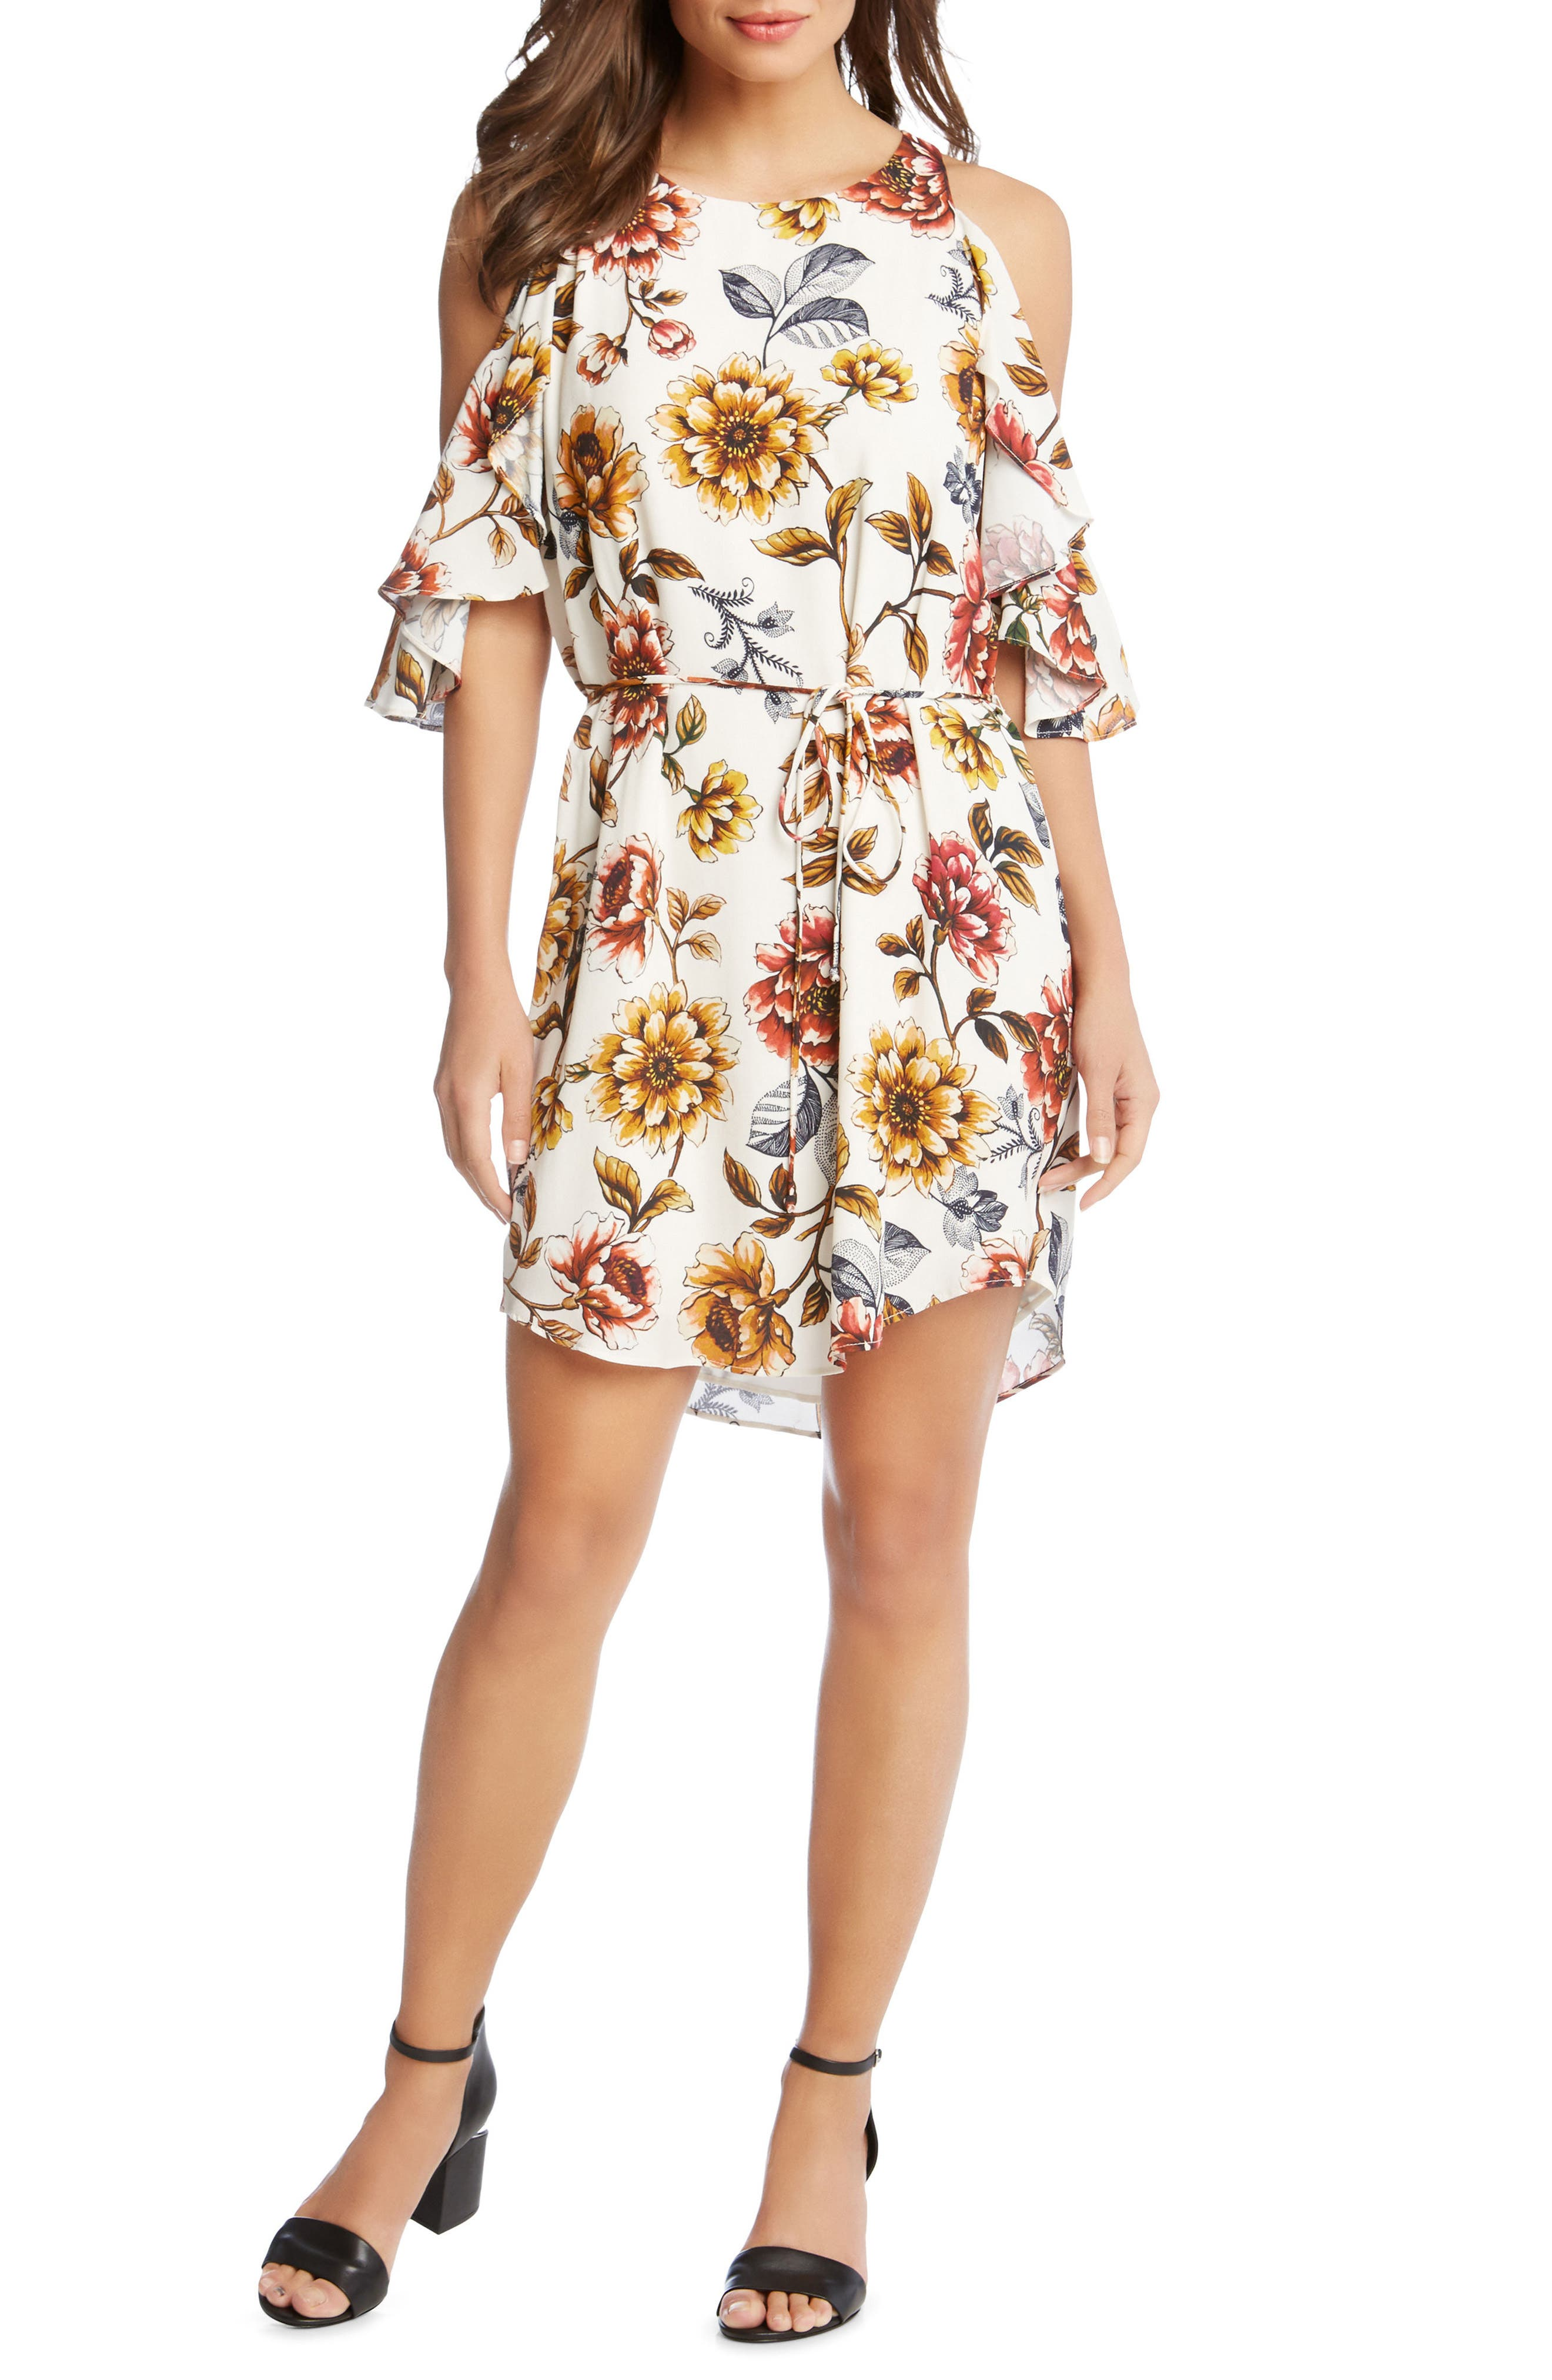 Kane Kane Cold Shoulder Floral Dress,                             Main thumbnail 1, color,                             PRINT